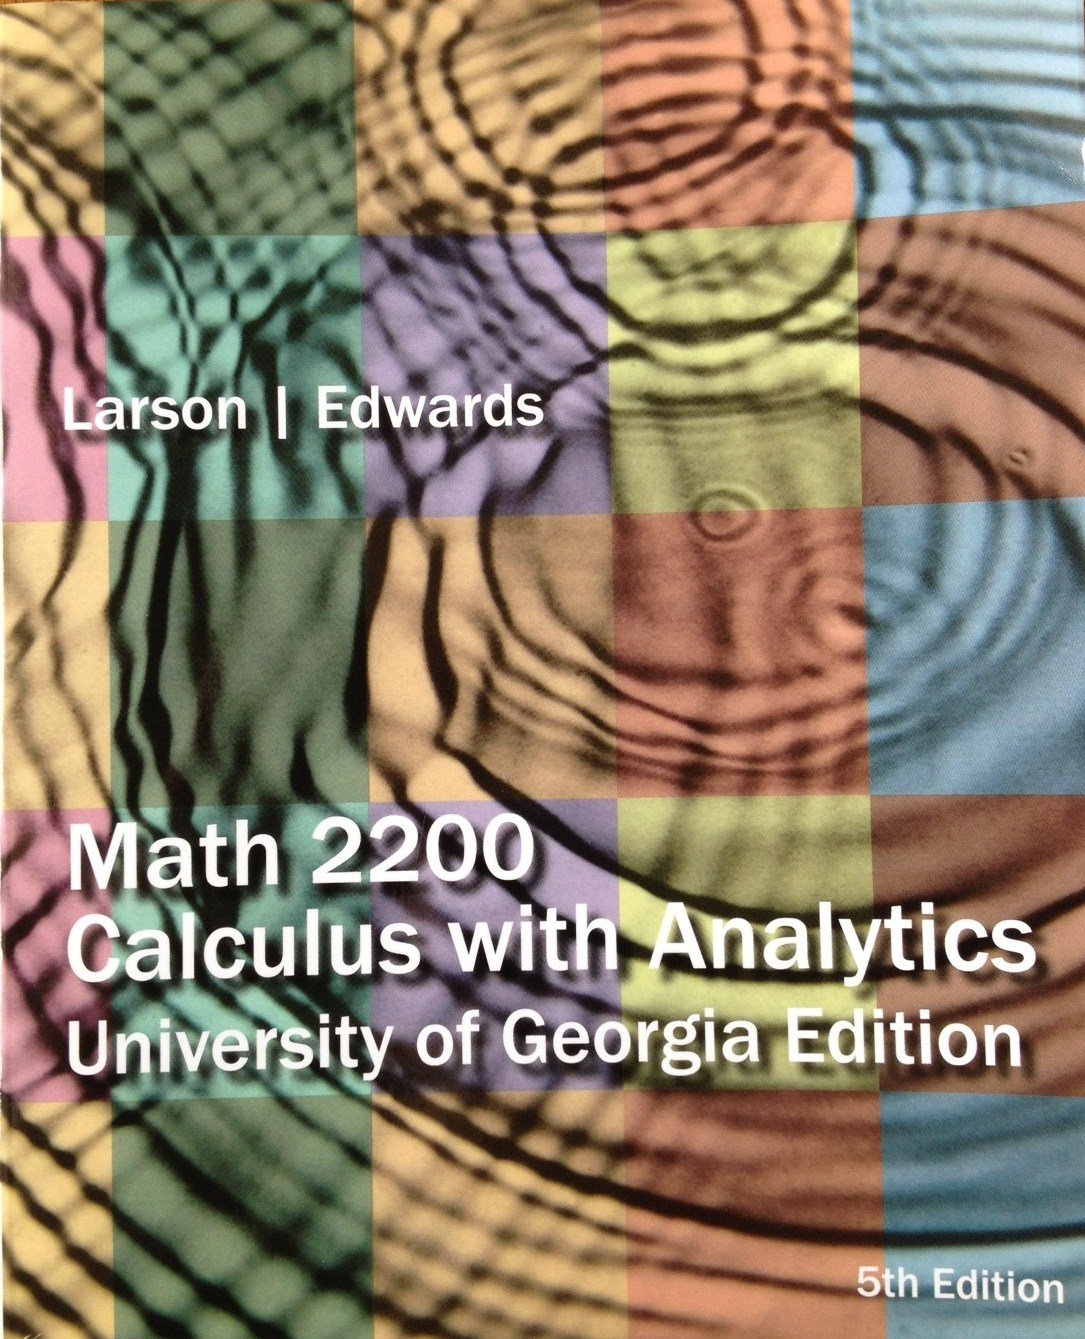 Download Math 2200 Calculus with Analytics (University of Georgia) [Paperback] (Math 2200 Calculus with Analytics (University of Georgia) [Paperback], Math 2200 Calculus with Analytics (University of Georgia) [Paperback]) pdf